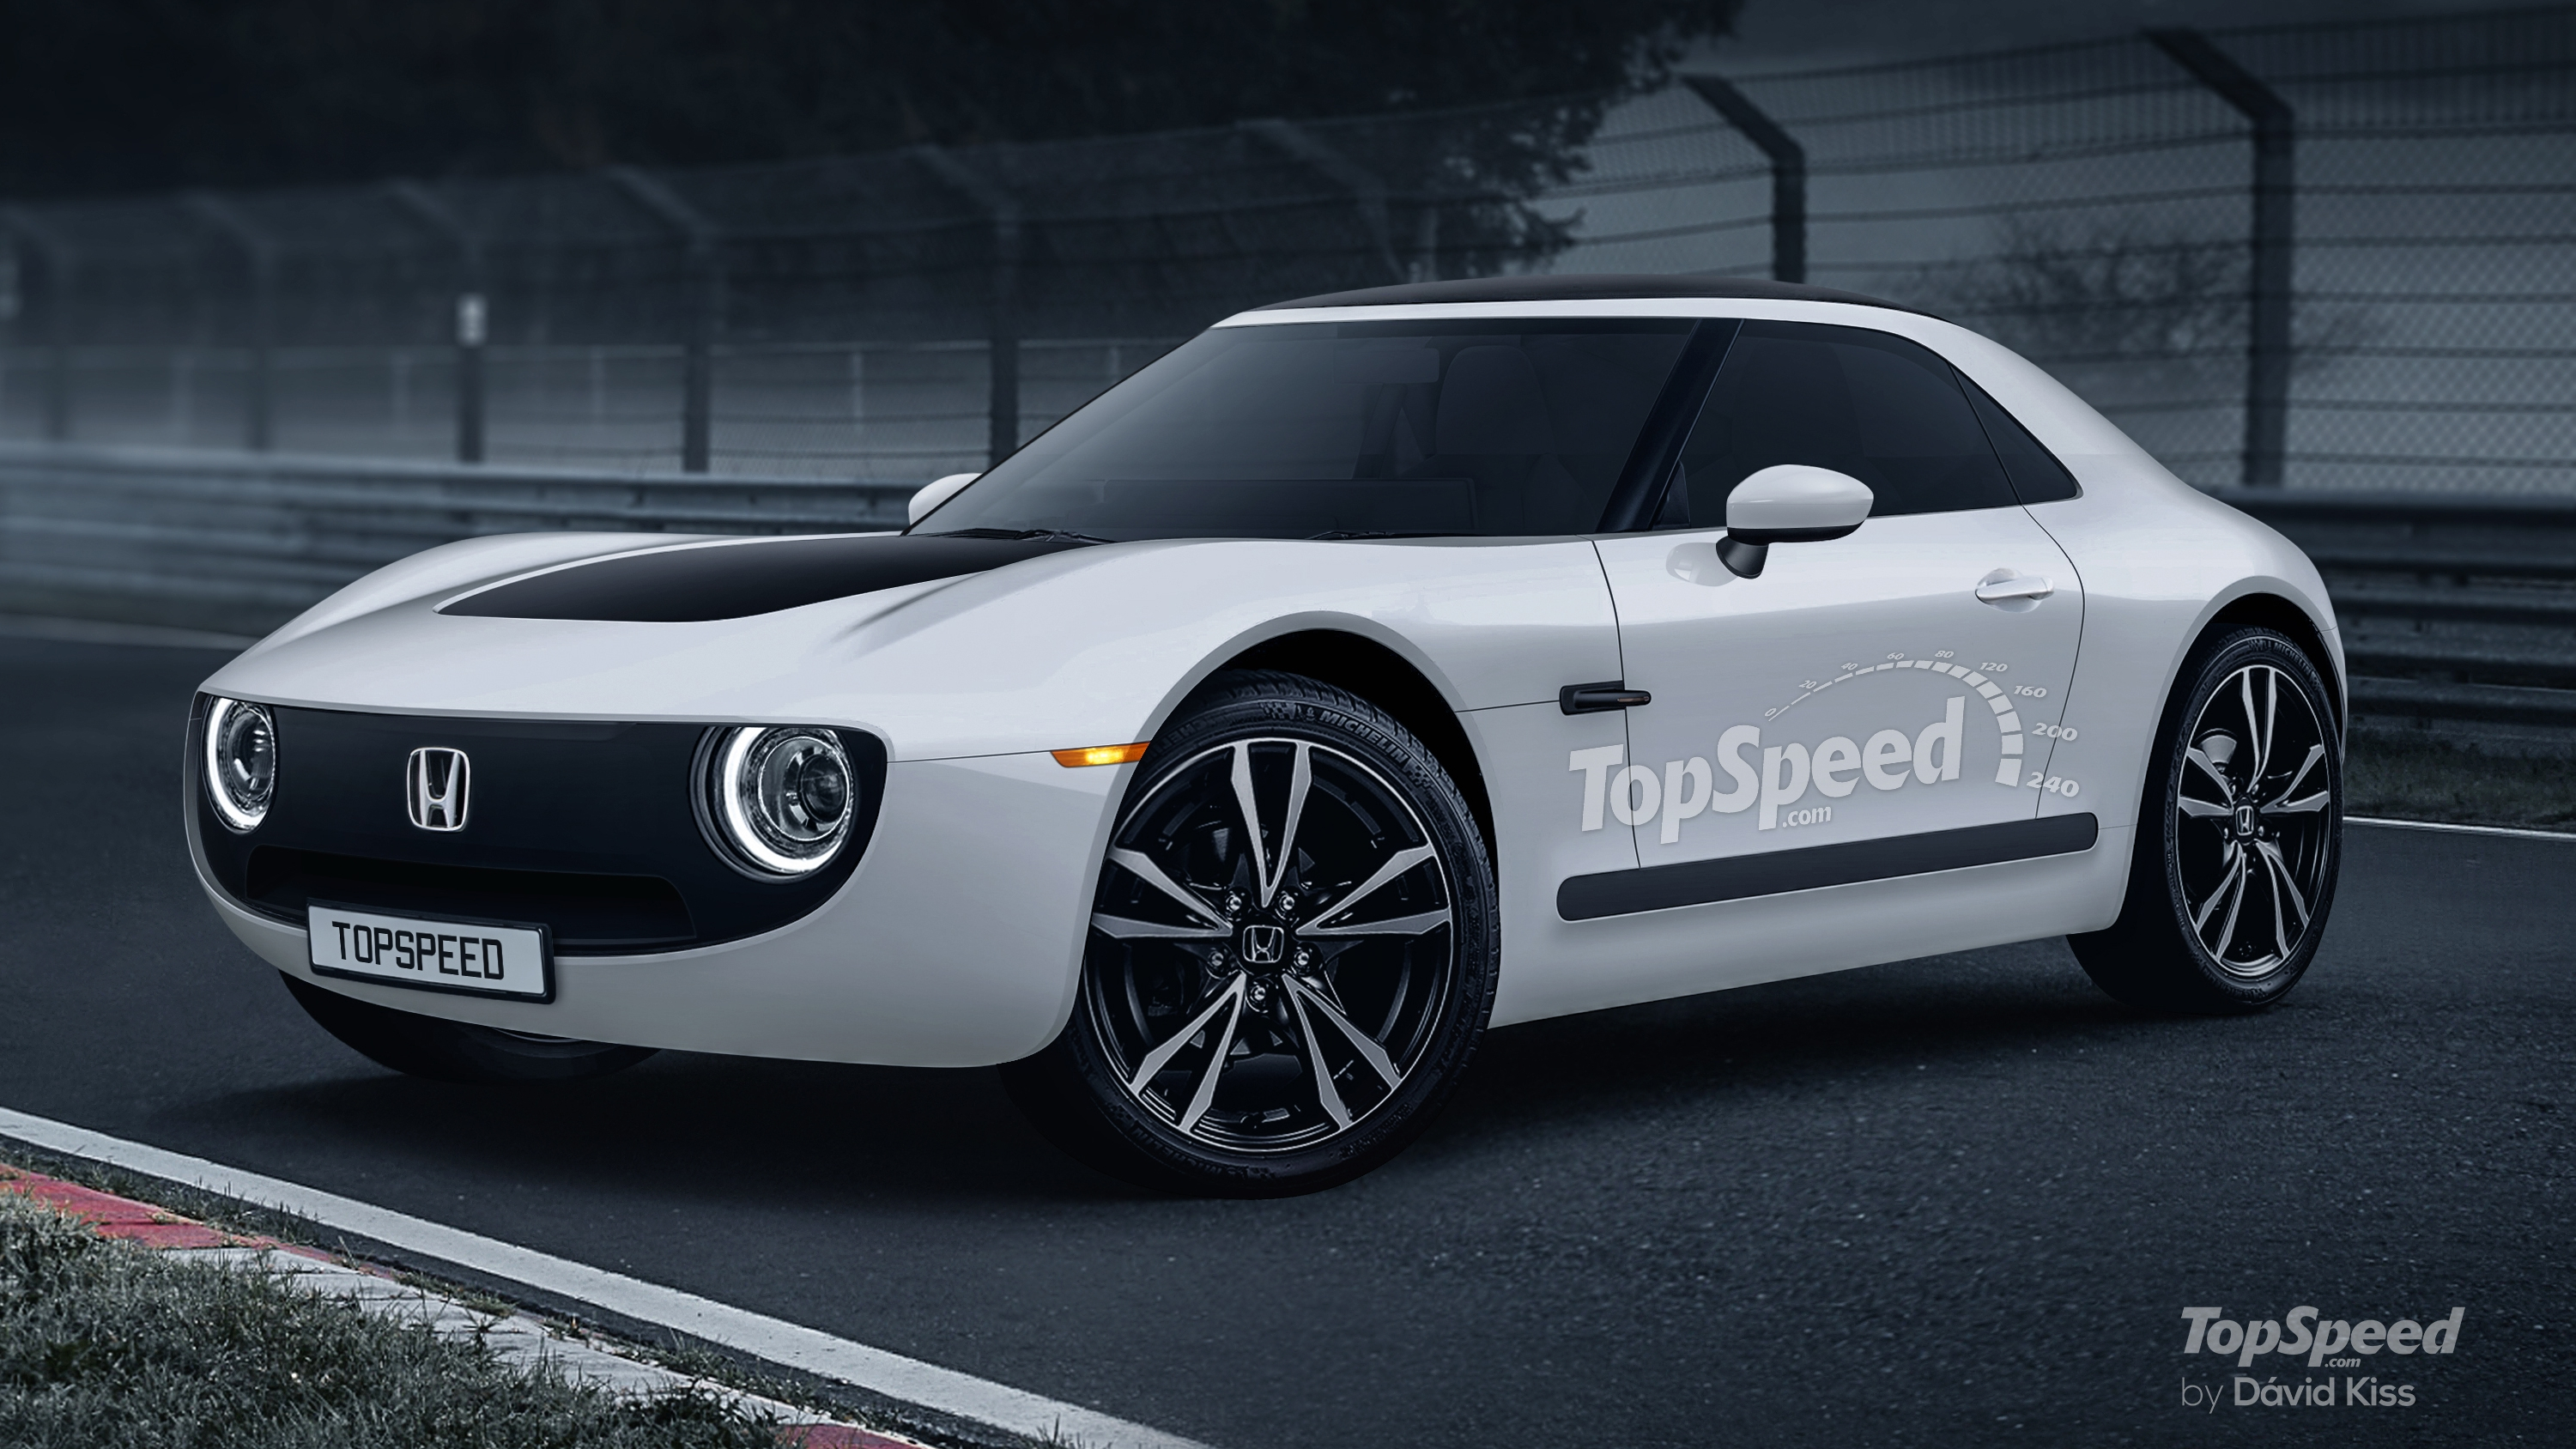 2020 Honda Sports EV Pictures, Photos, Wallpapers. | Top Speed